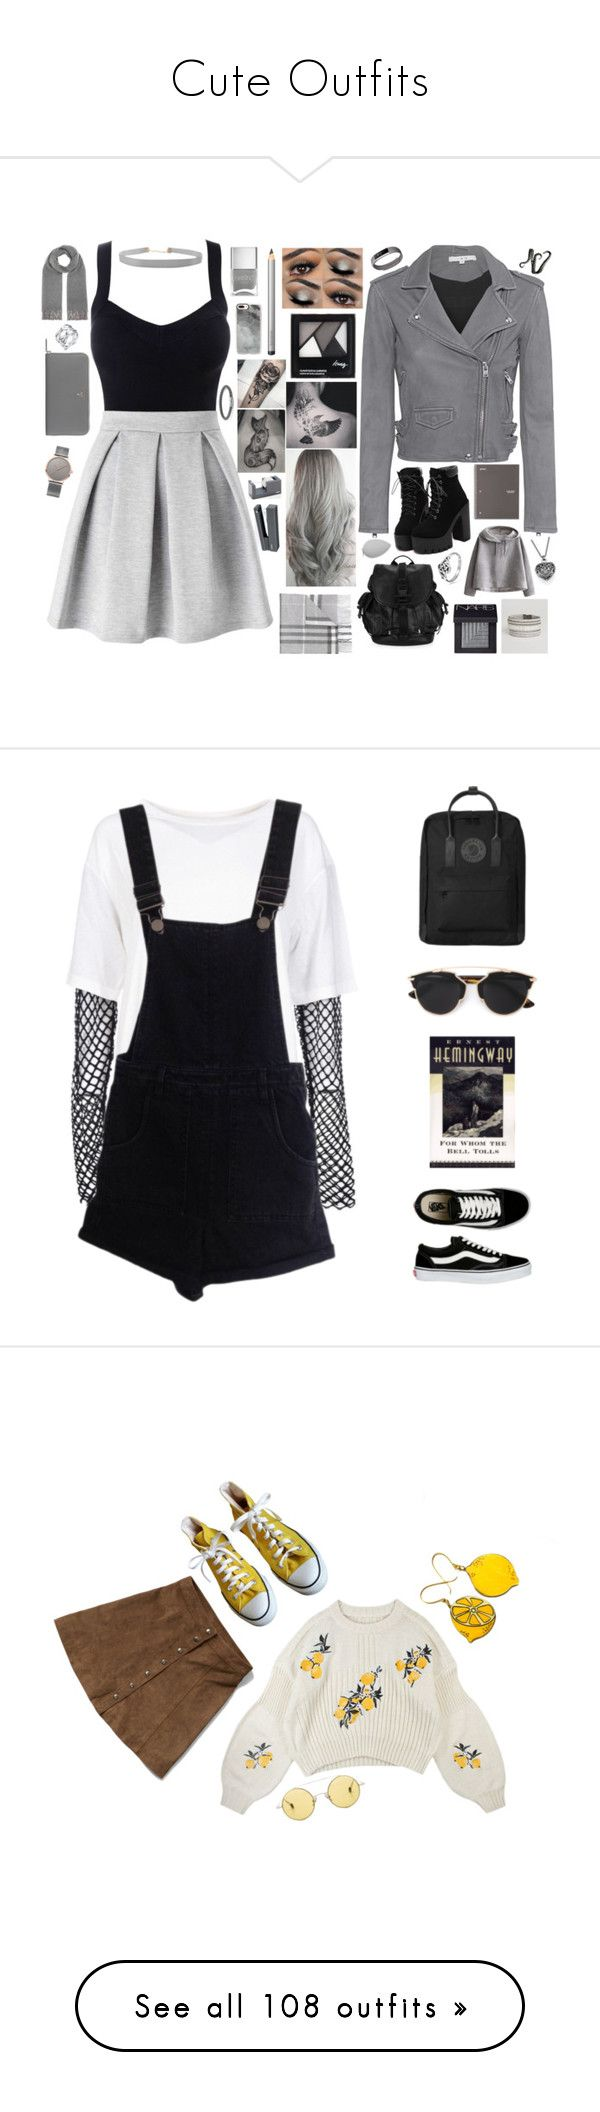 """""""Cute Outfits"""" by xnightelsax ❤ liked on Polyvore featuring Nails Inc., Fitbit, Laura Mercier, Humble Chic, IRO, Casetify, Miss Selfridge, Givenchy, beautyblender and John Hardy"""